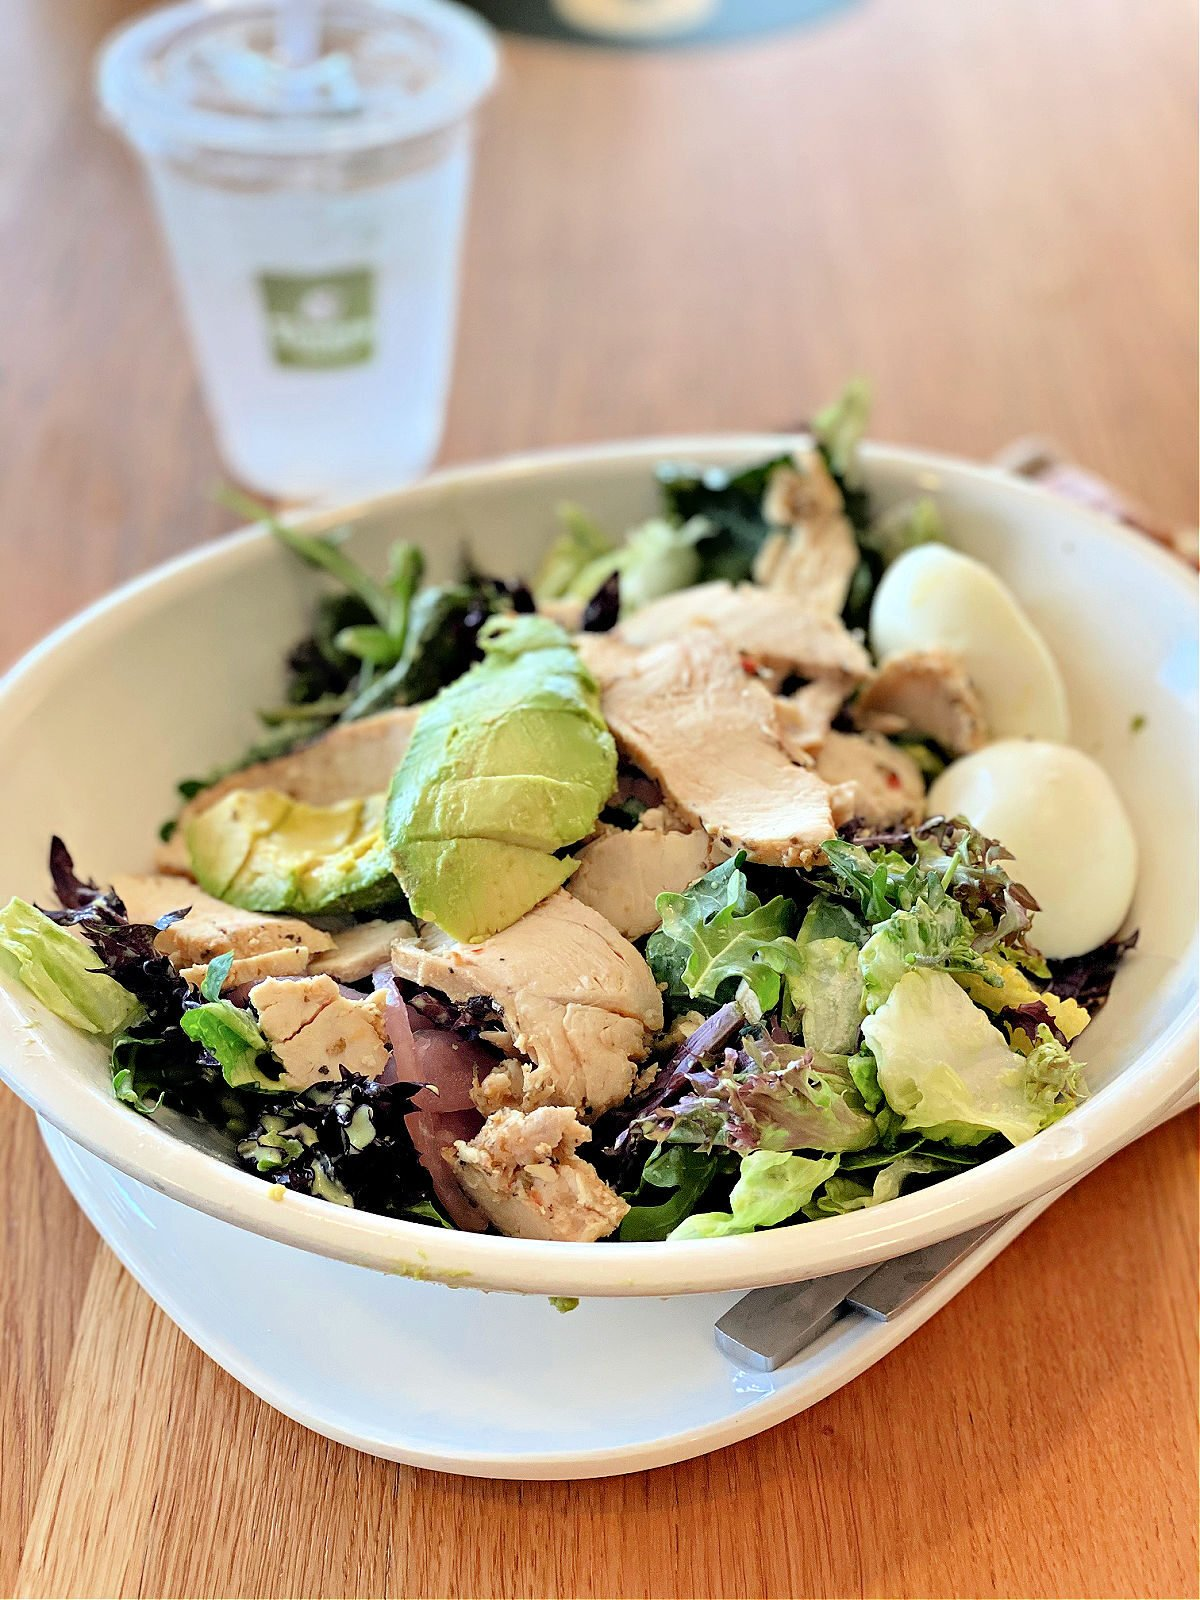 Panera's Green Goddess Salad and a cup of water.